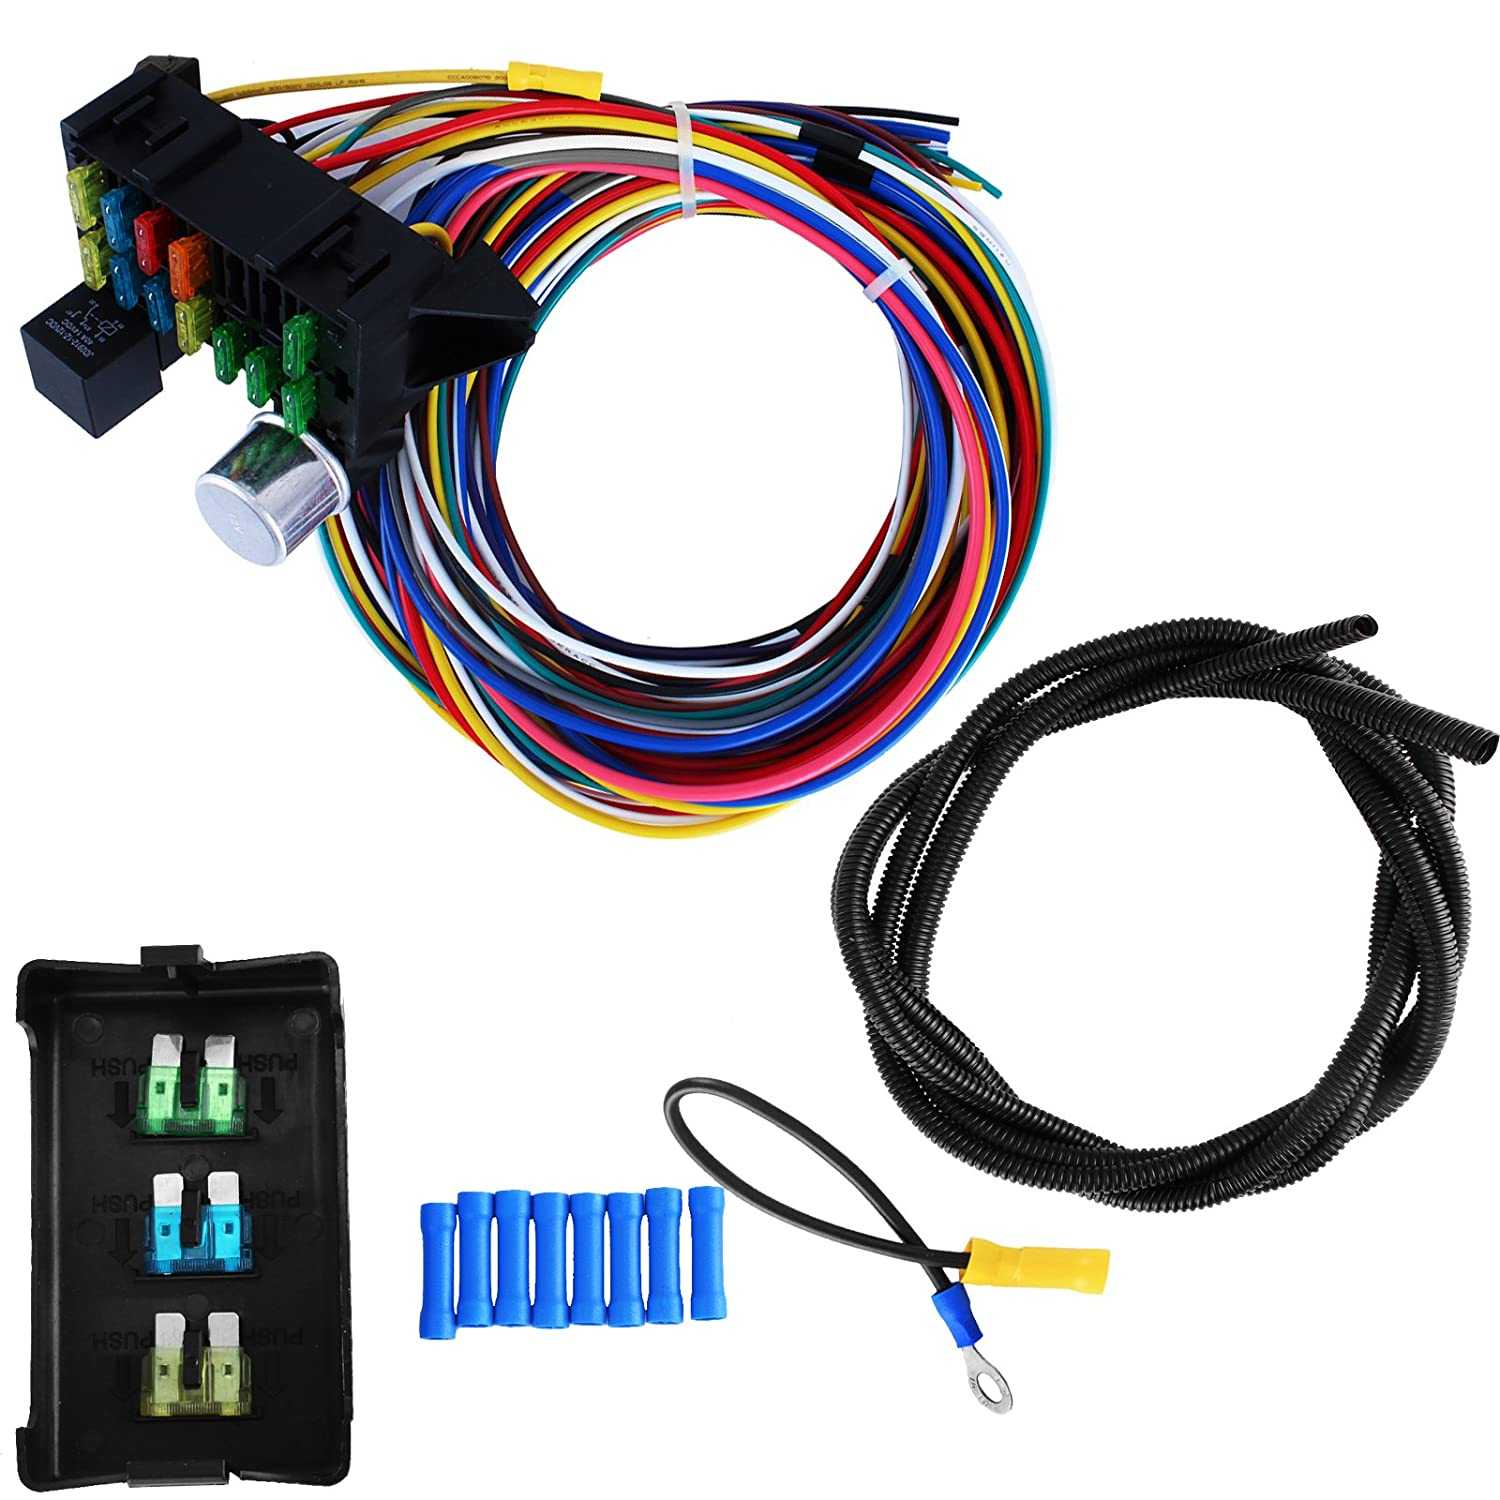 amazon com: lovshare 12 circuit universal wire harness fuse box wire harness  kit muscle car hot rod street rod new xl wires: health & personal care